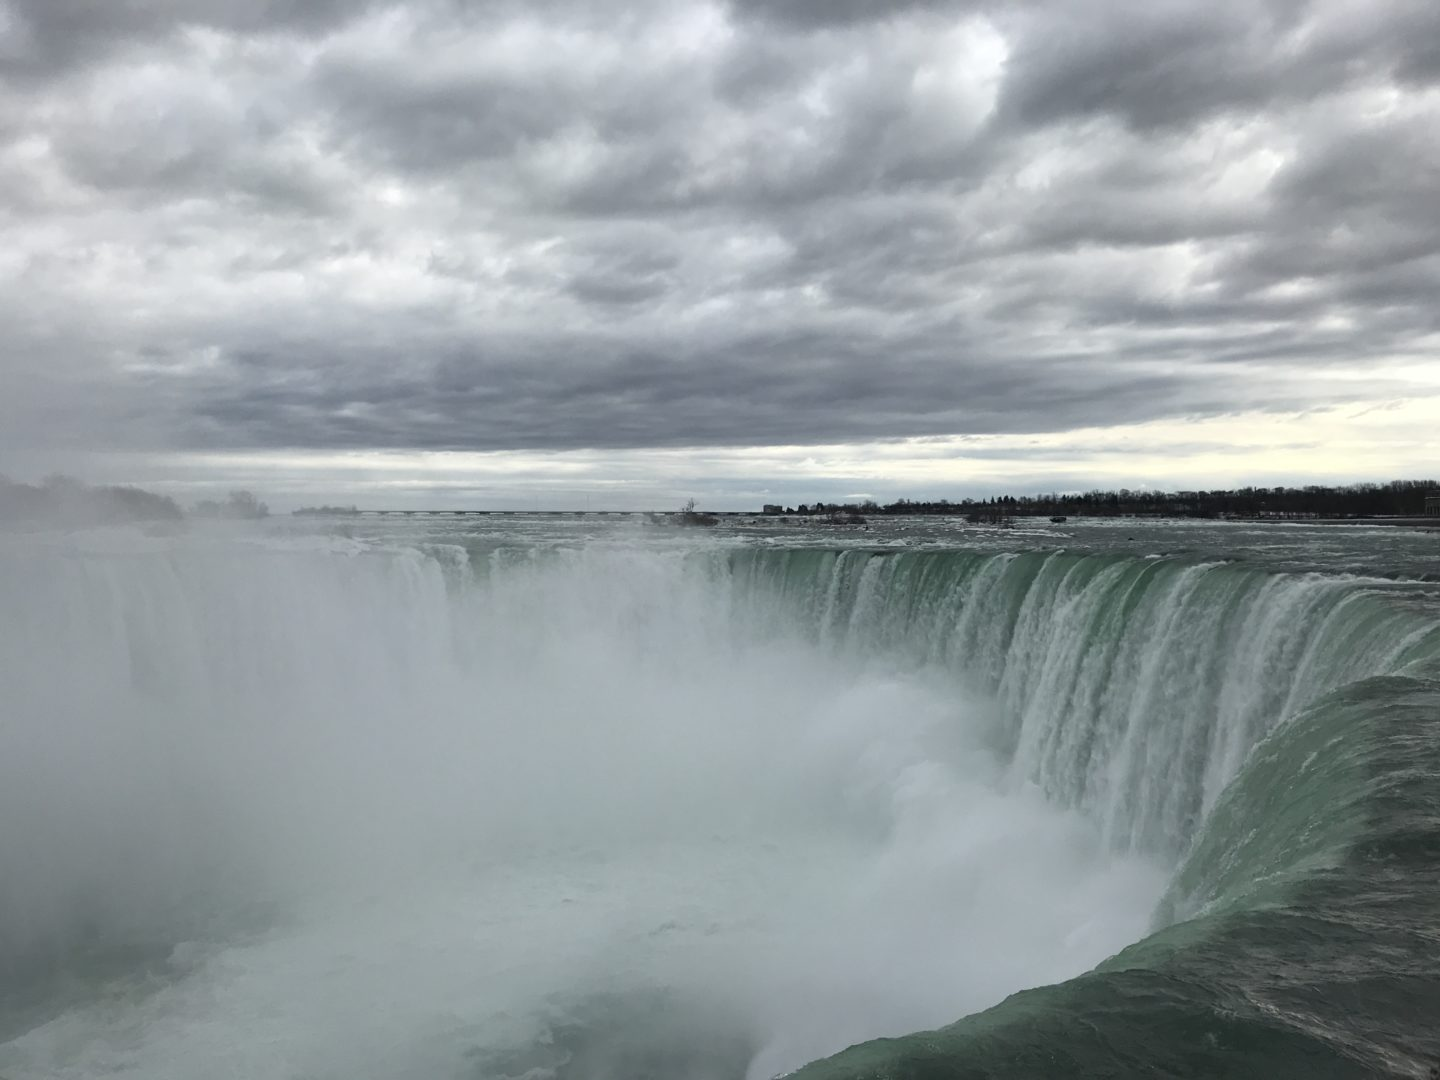 Experience the Niagara Falls in Winter